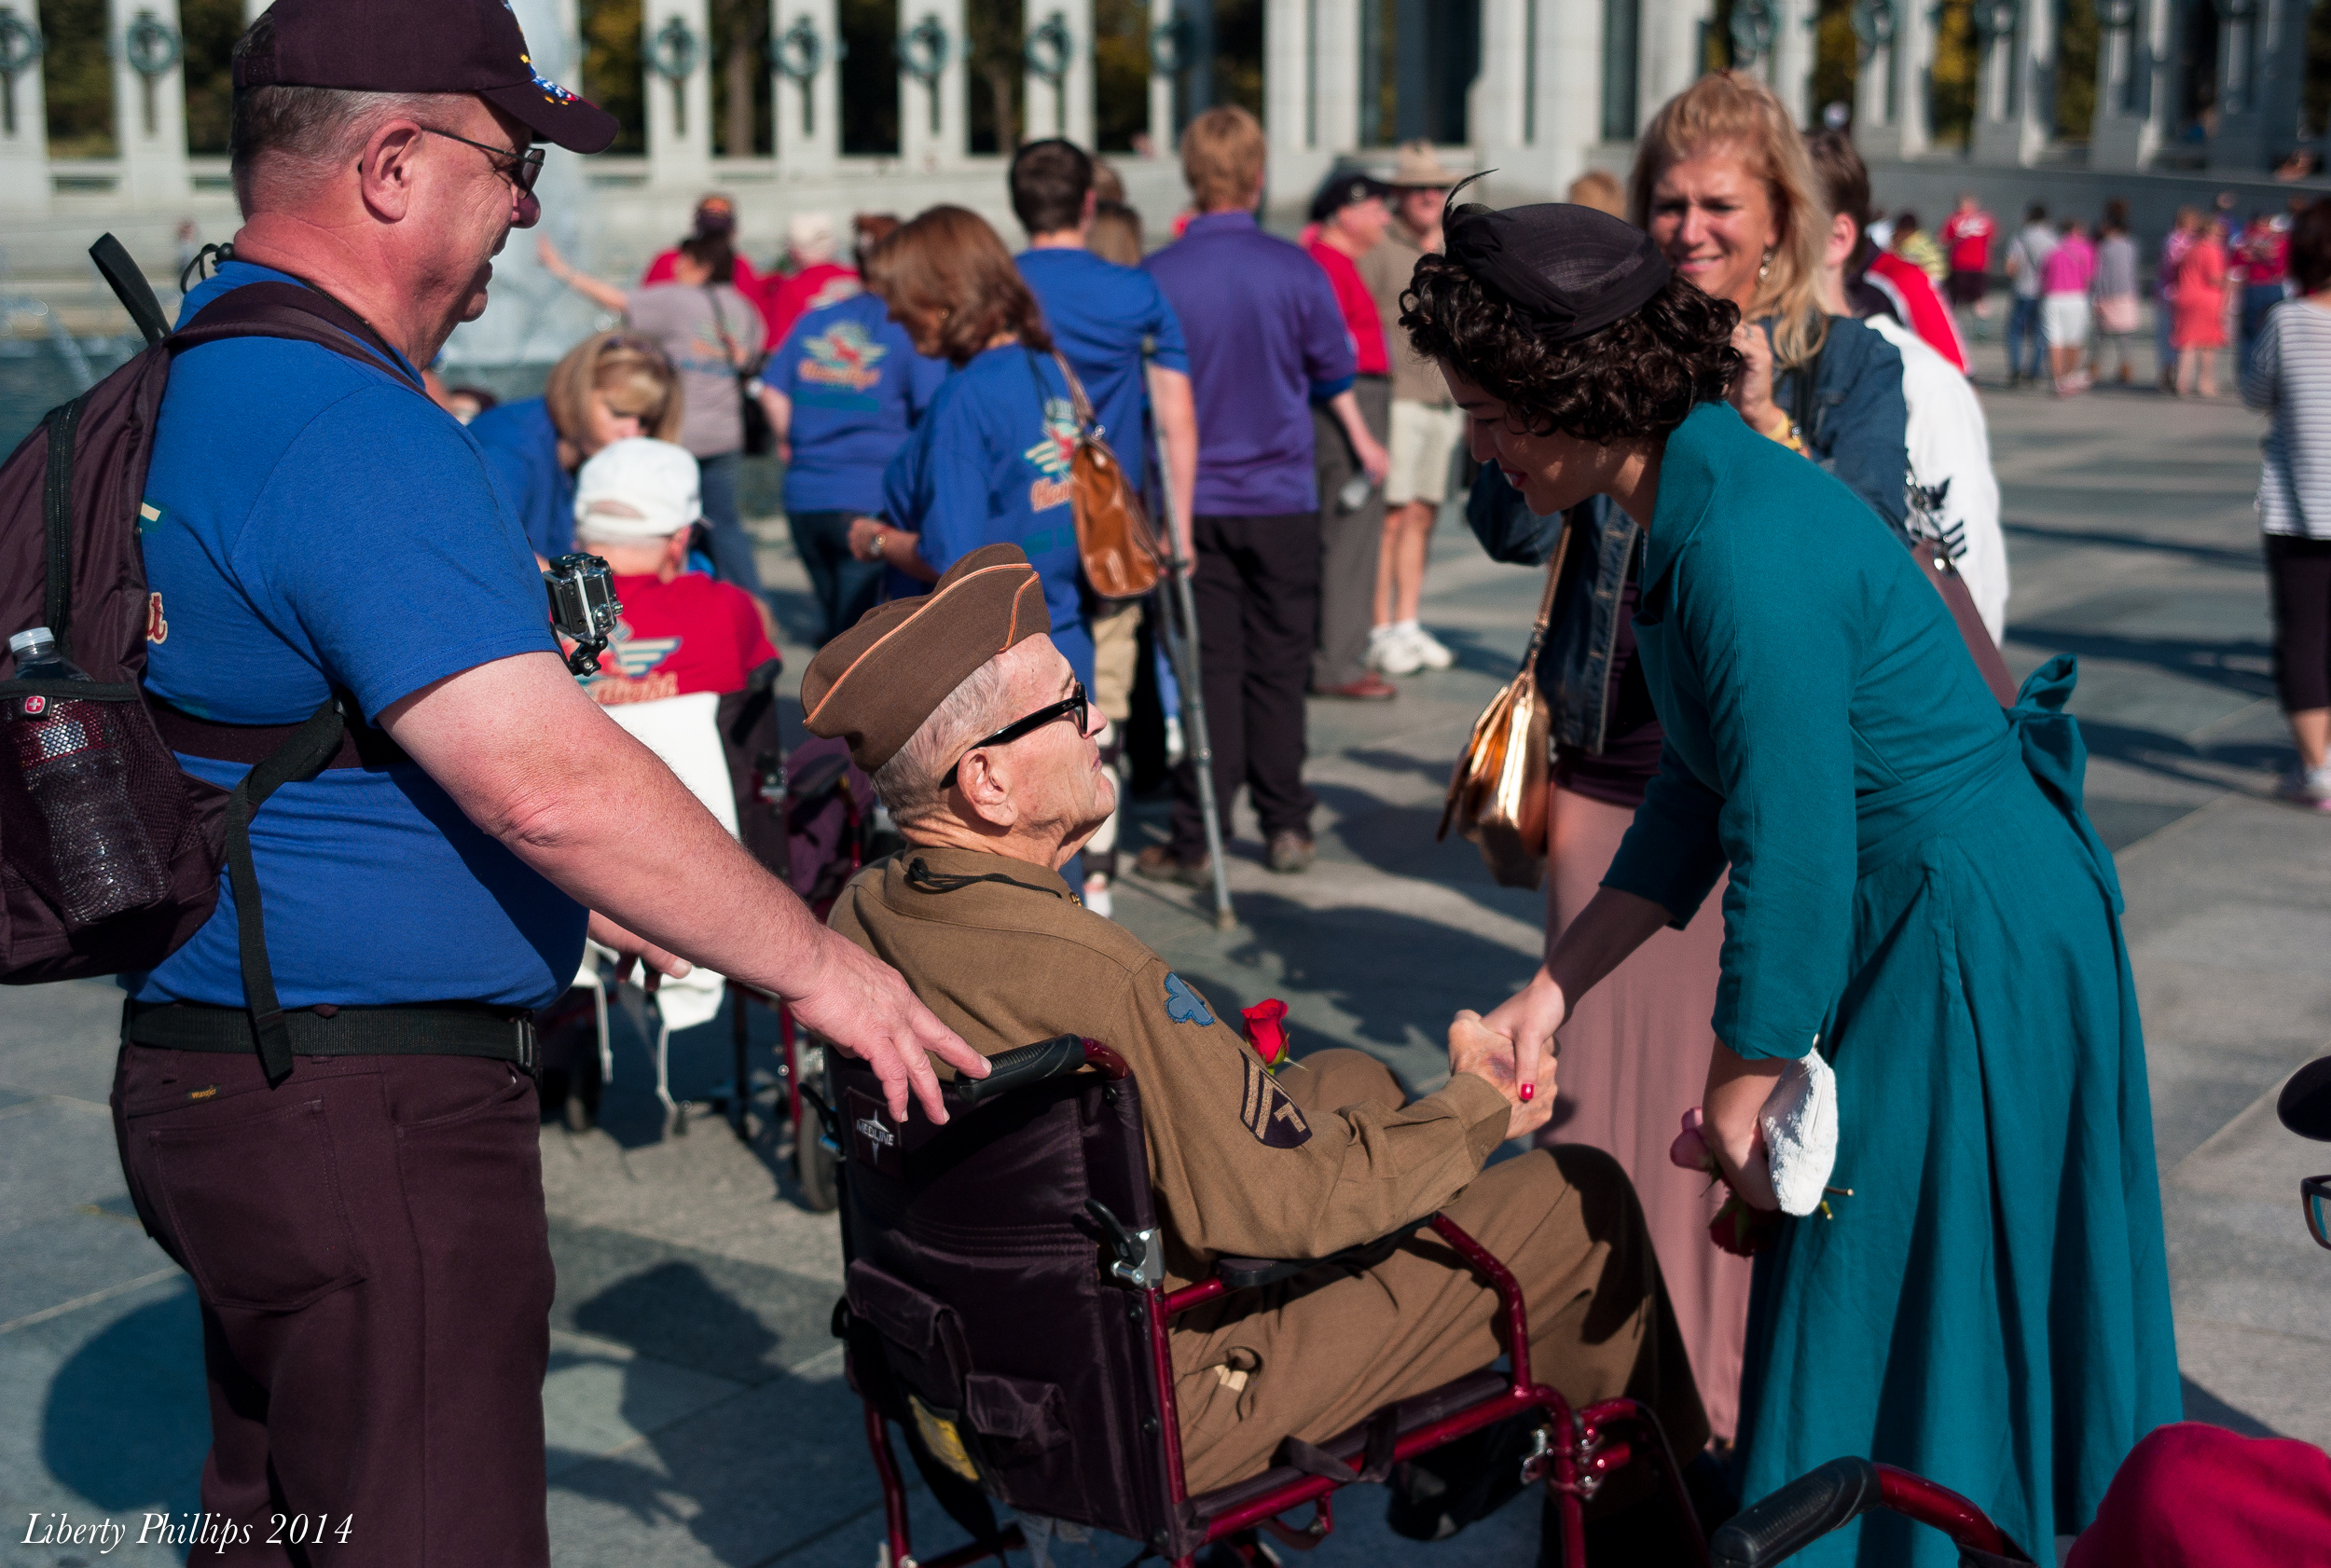 This veteran Jubilee is greeting is wearing his original uniform from WWII.